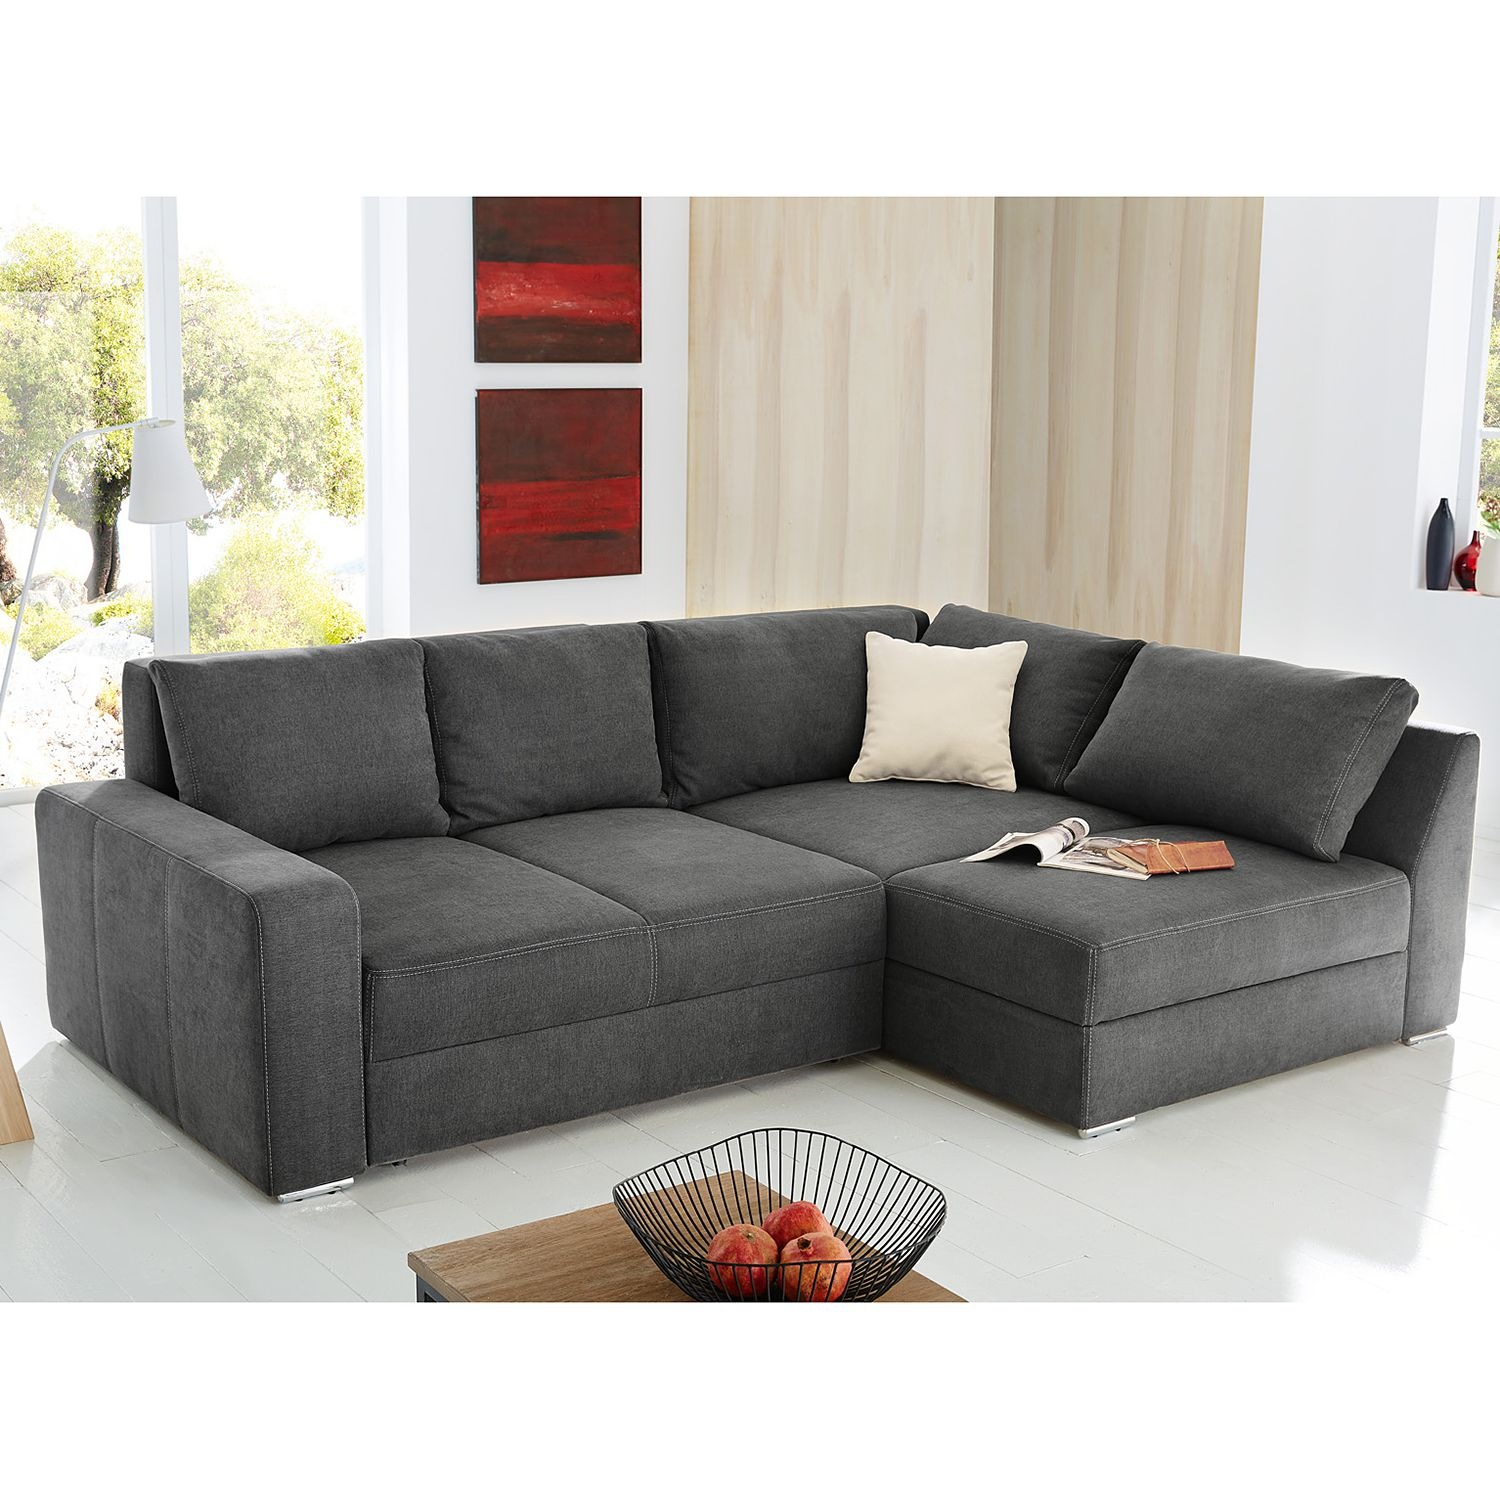 ecksofa stoff grau ecksofa stoff grau oscar sofa samt sofas von wilmowsky with ecksofa stoff. Black Bedroom Furniture Sets. Home Design Ideas